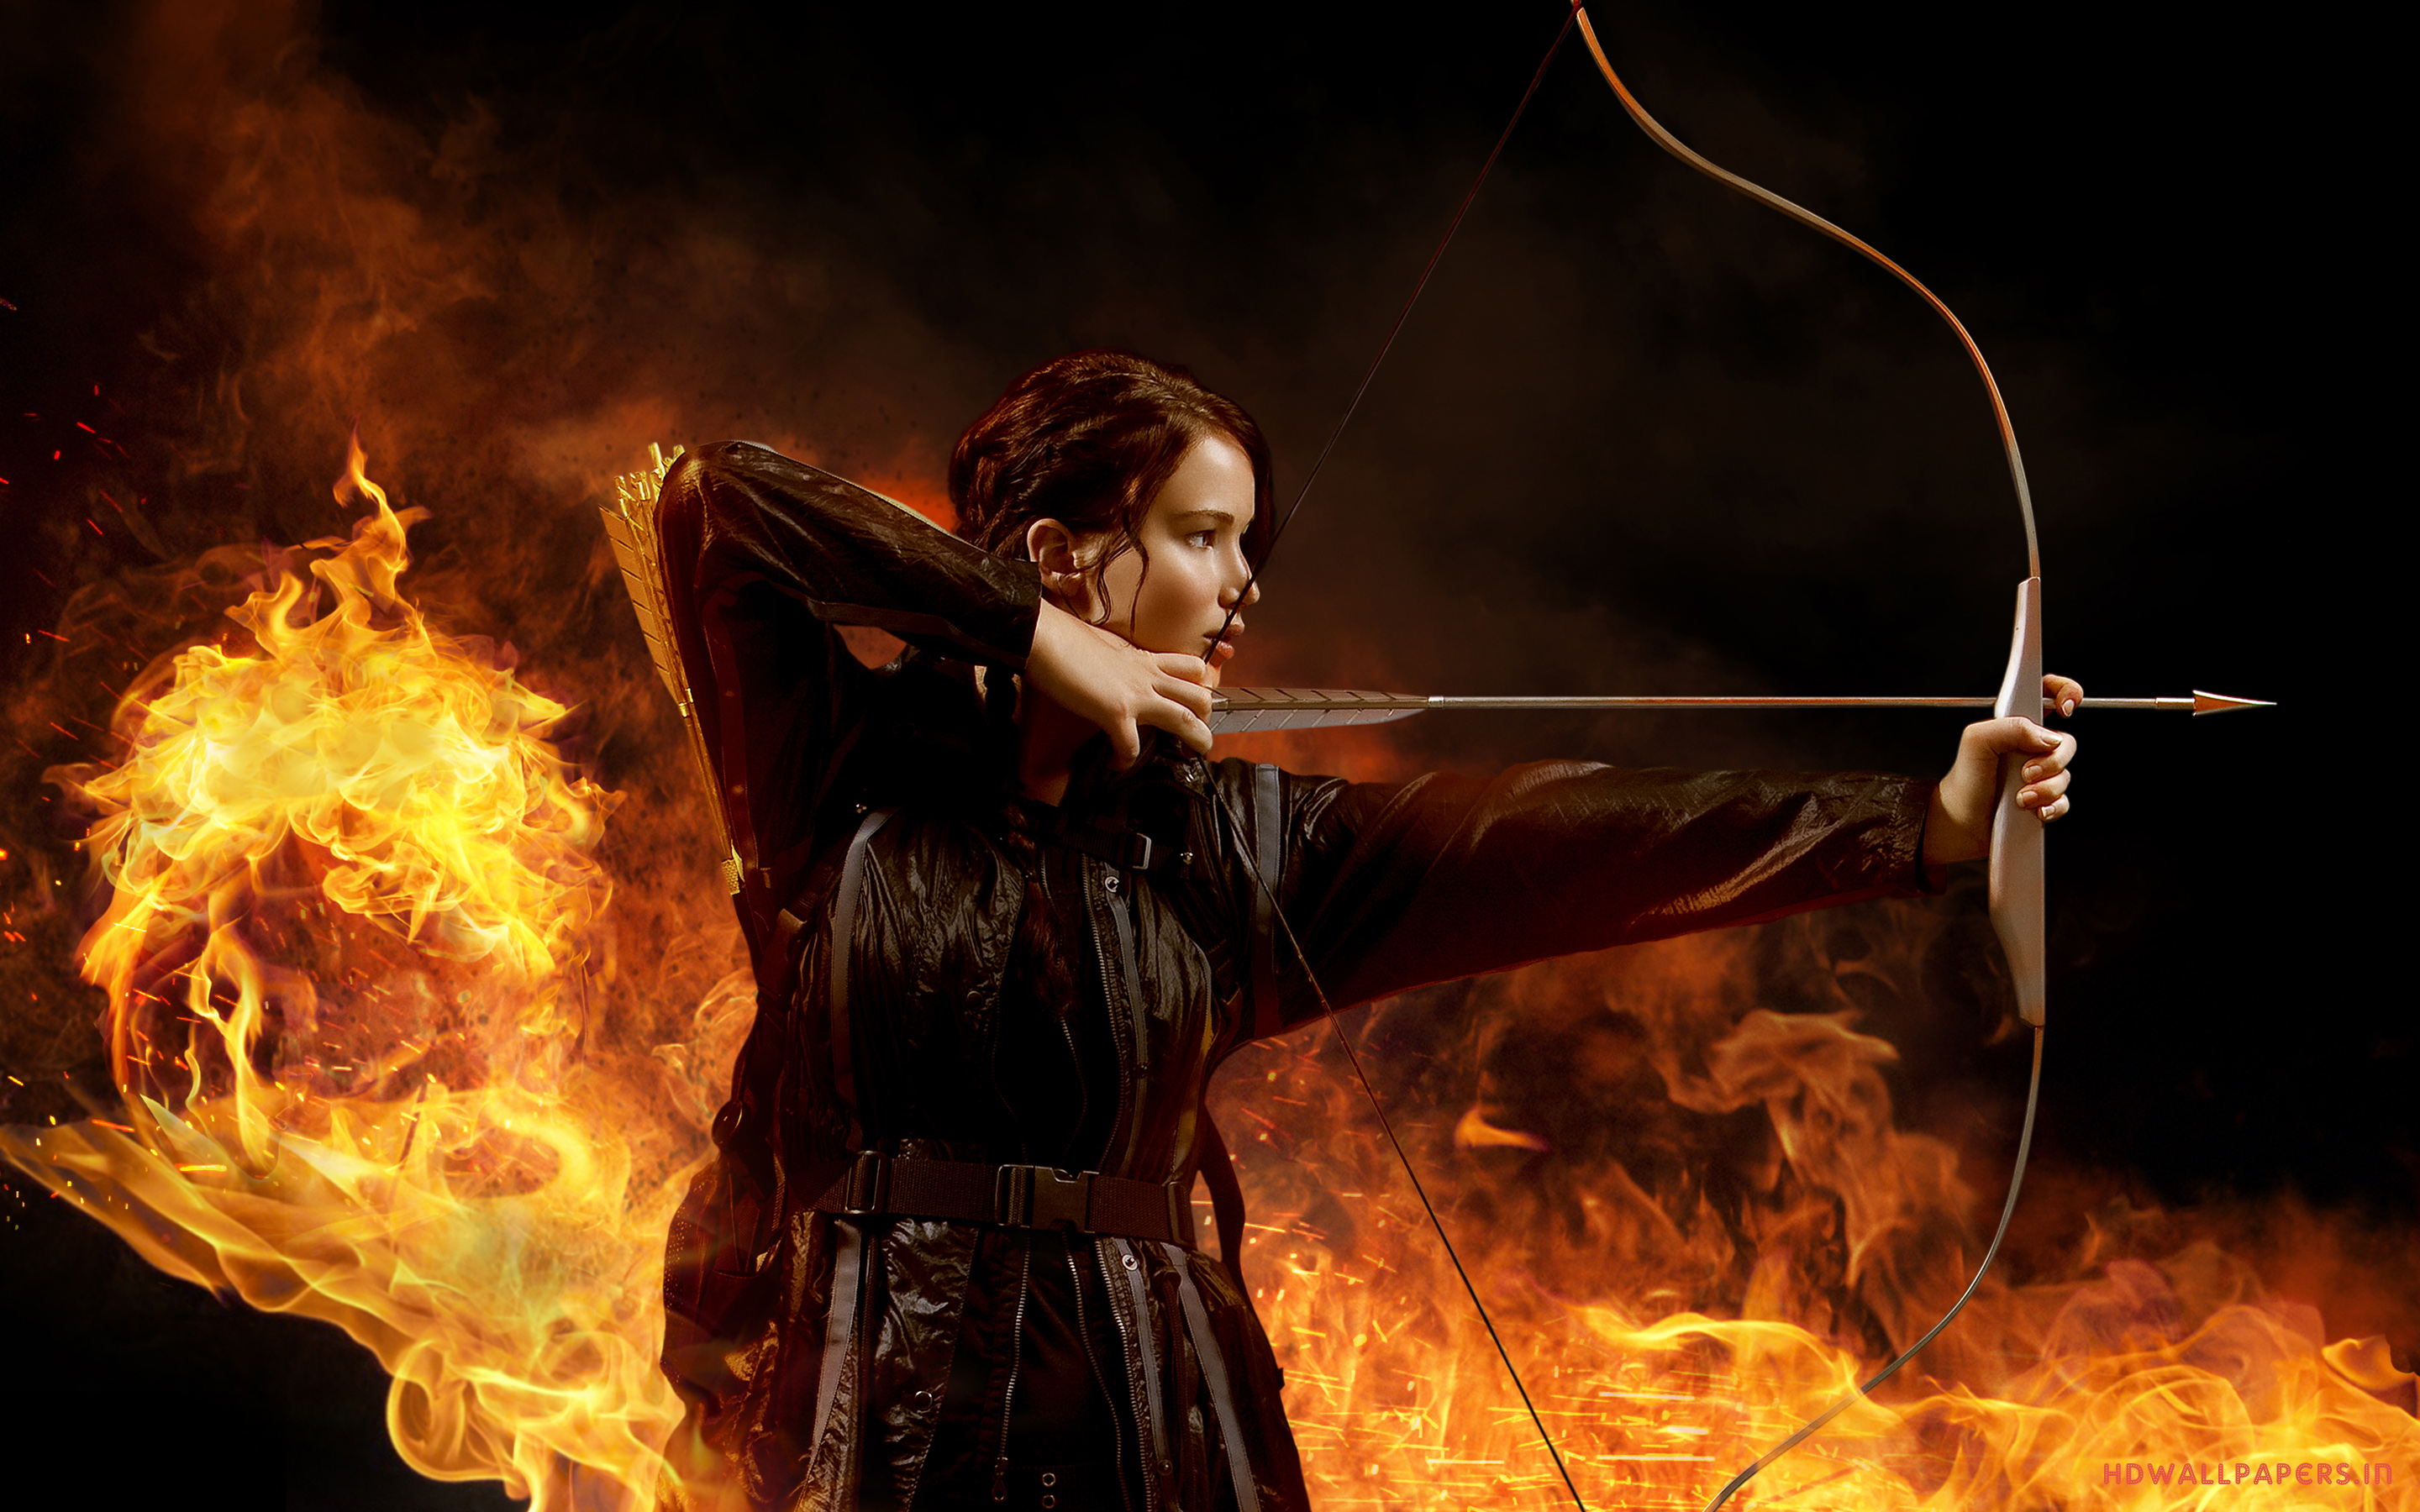 Jennifer Lawrence in The Hunger Games Wallpapers HD Wallpapers 2880x1800